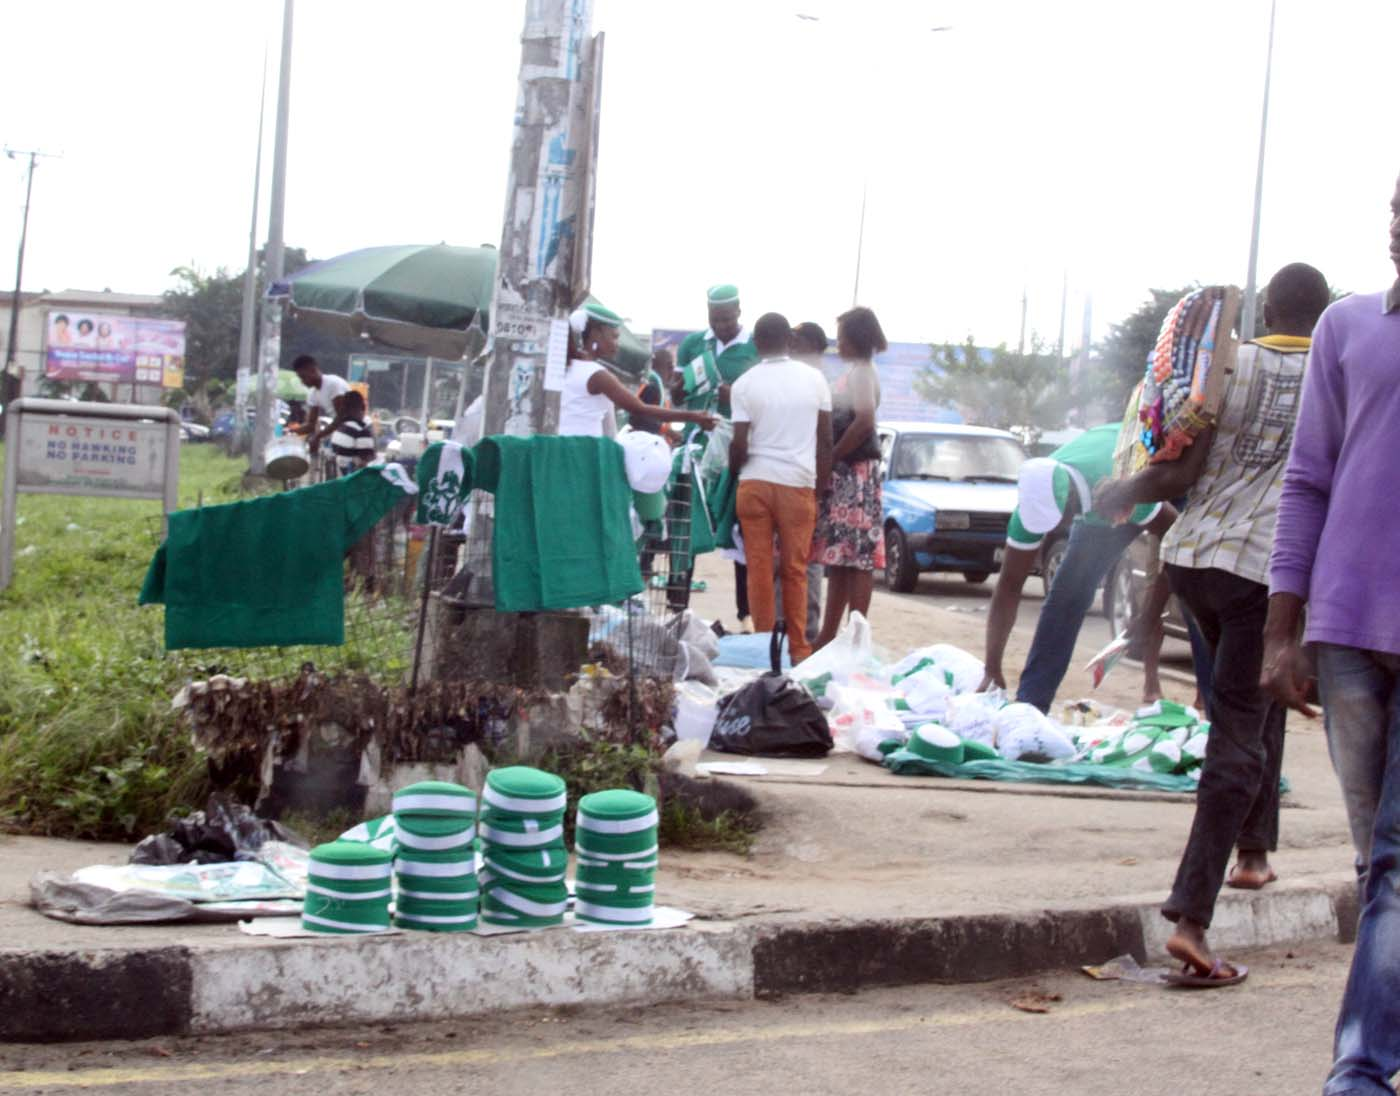 Items made in Nigerian colors to Comemorate the Country's 55th Independence anniversary on display for sale at the Liberation Stadium, Elekahia Port Harcourt,  in Rivers State. Photo: Nwankpa Chijioke